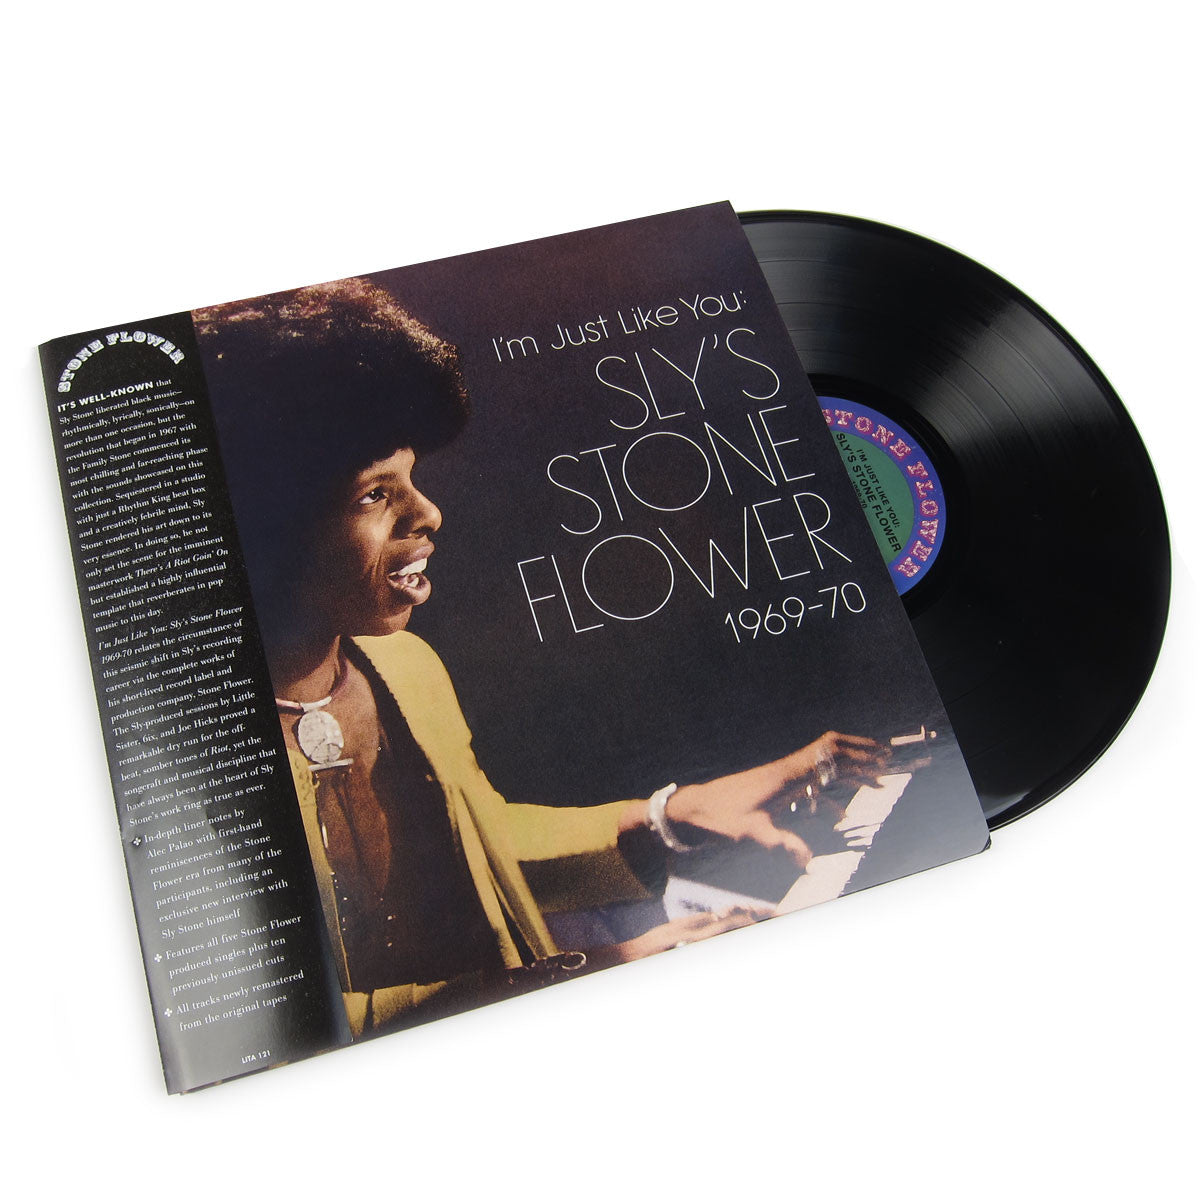 Sly Stone: I'm Just Like You - Sly's Stone Flower 1969-70 Vinyl 2LP